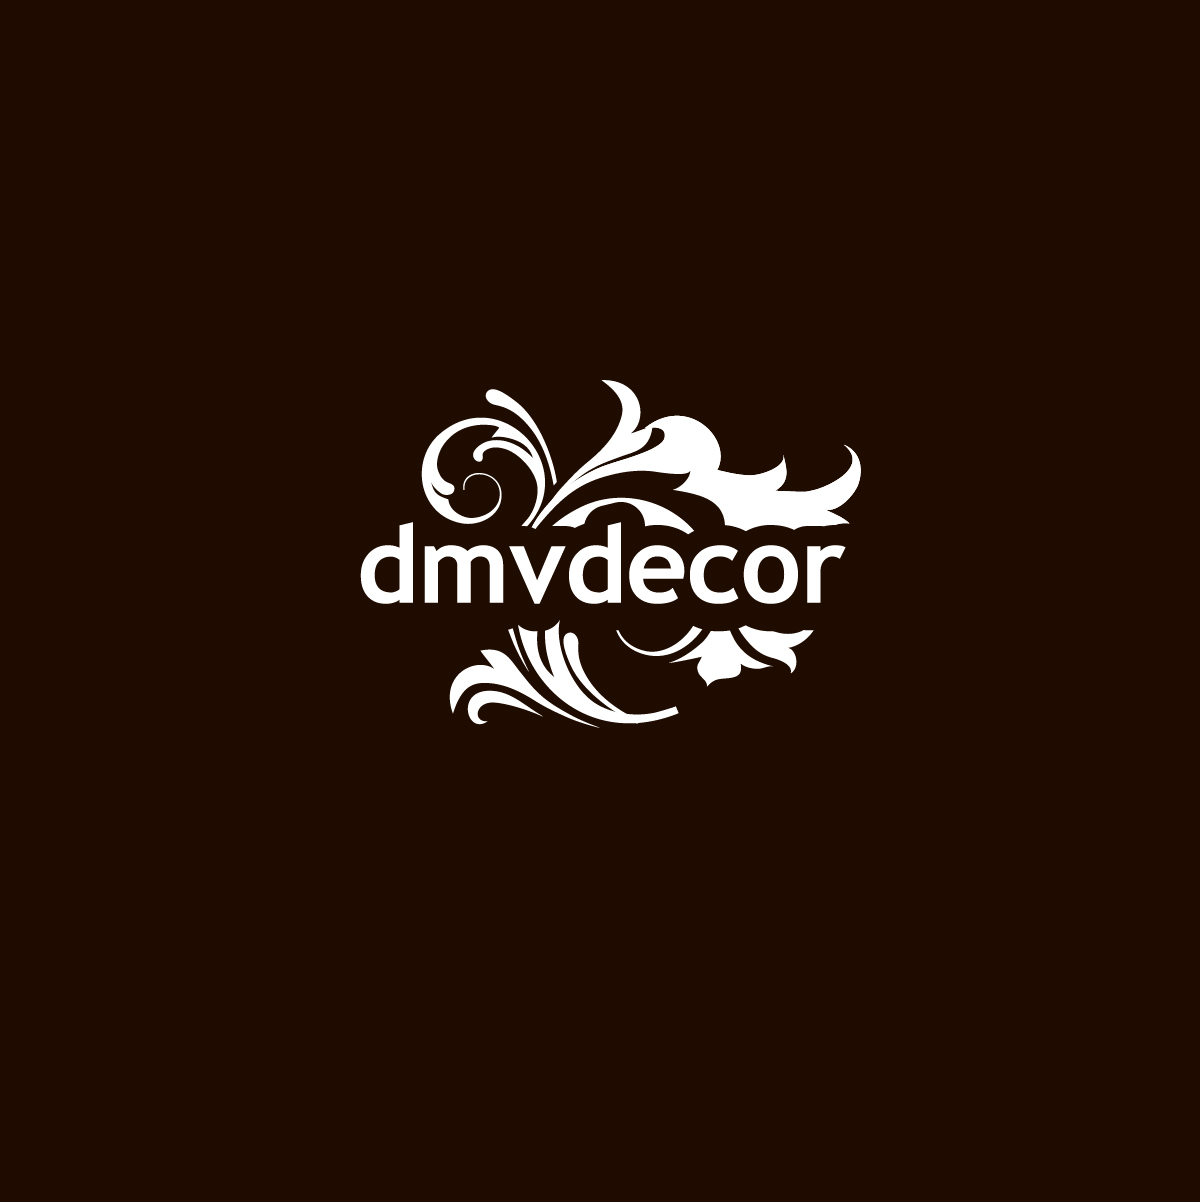 Logo Design by Jodi Kristine Topacio - Entry No. 210 in the Logo Design Contest dmvdecor Logo Design.